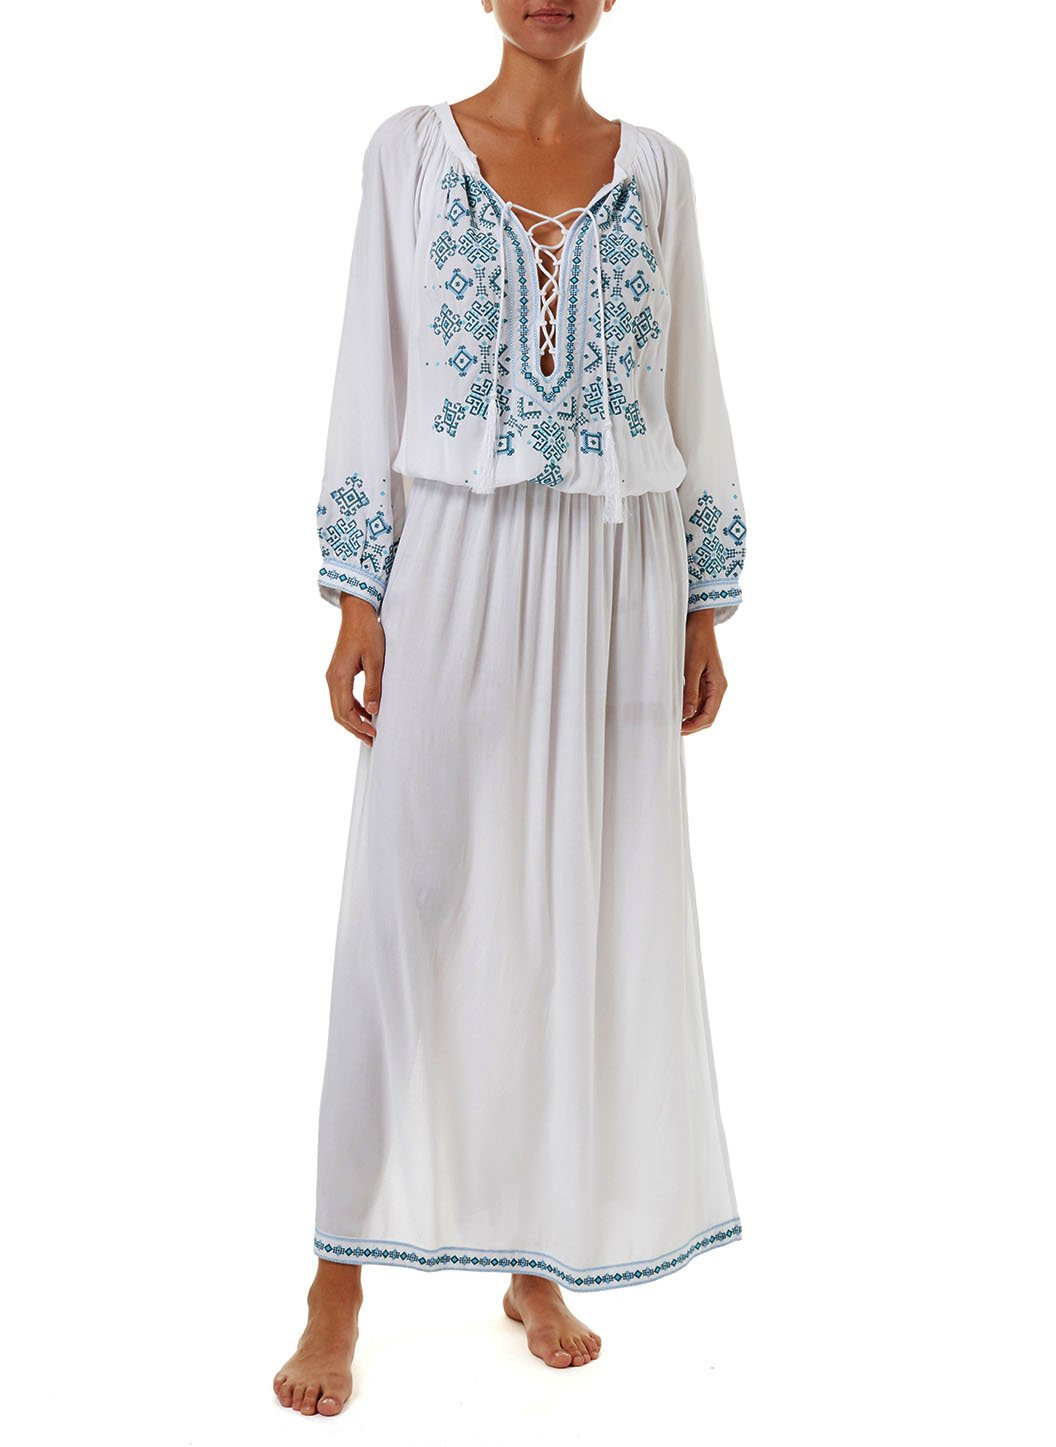 sienna white green embroidered 34sleeve maxi dress 2019 F